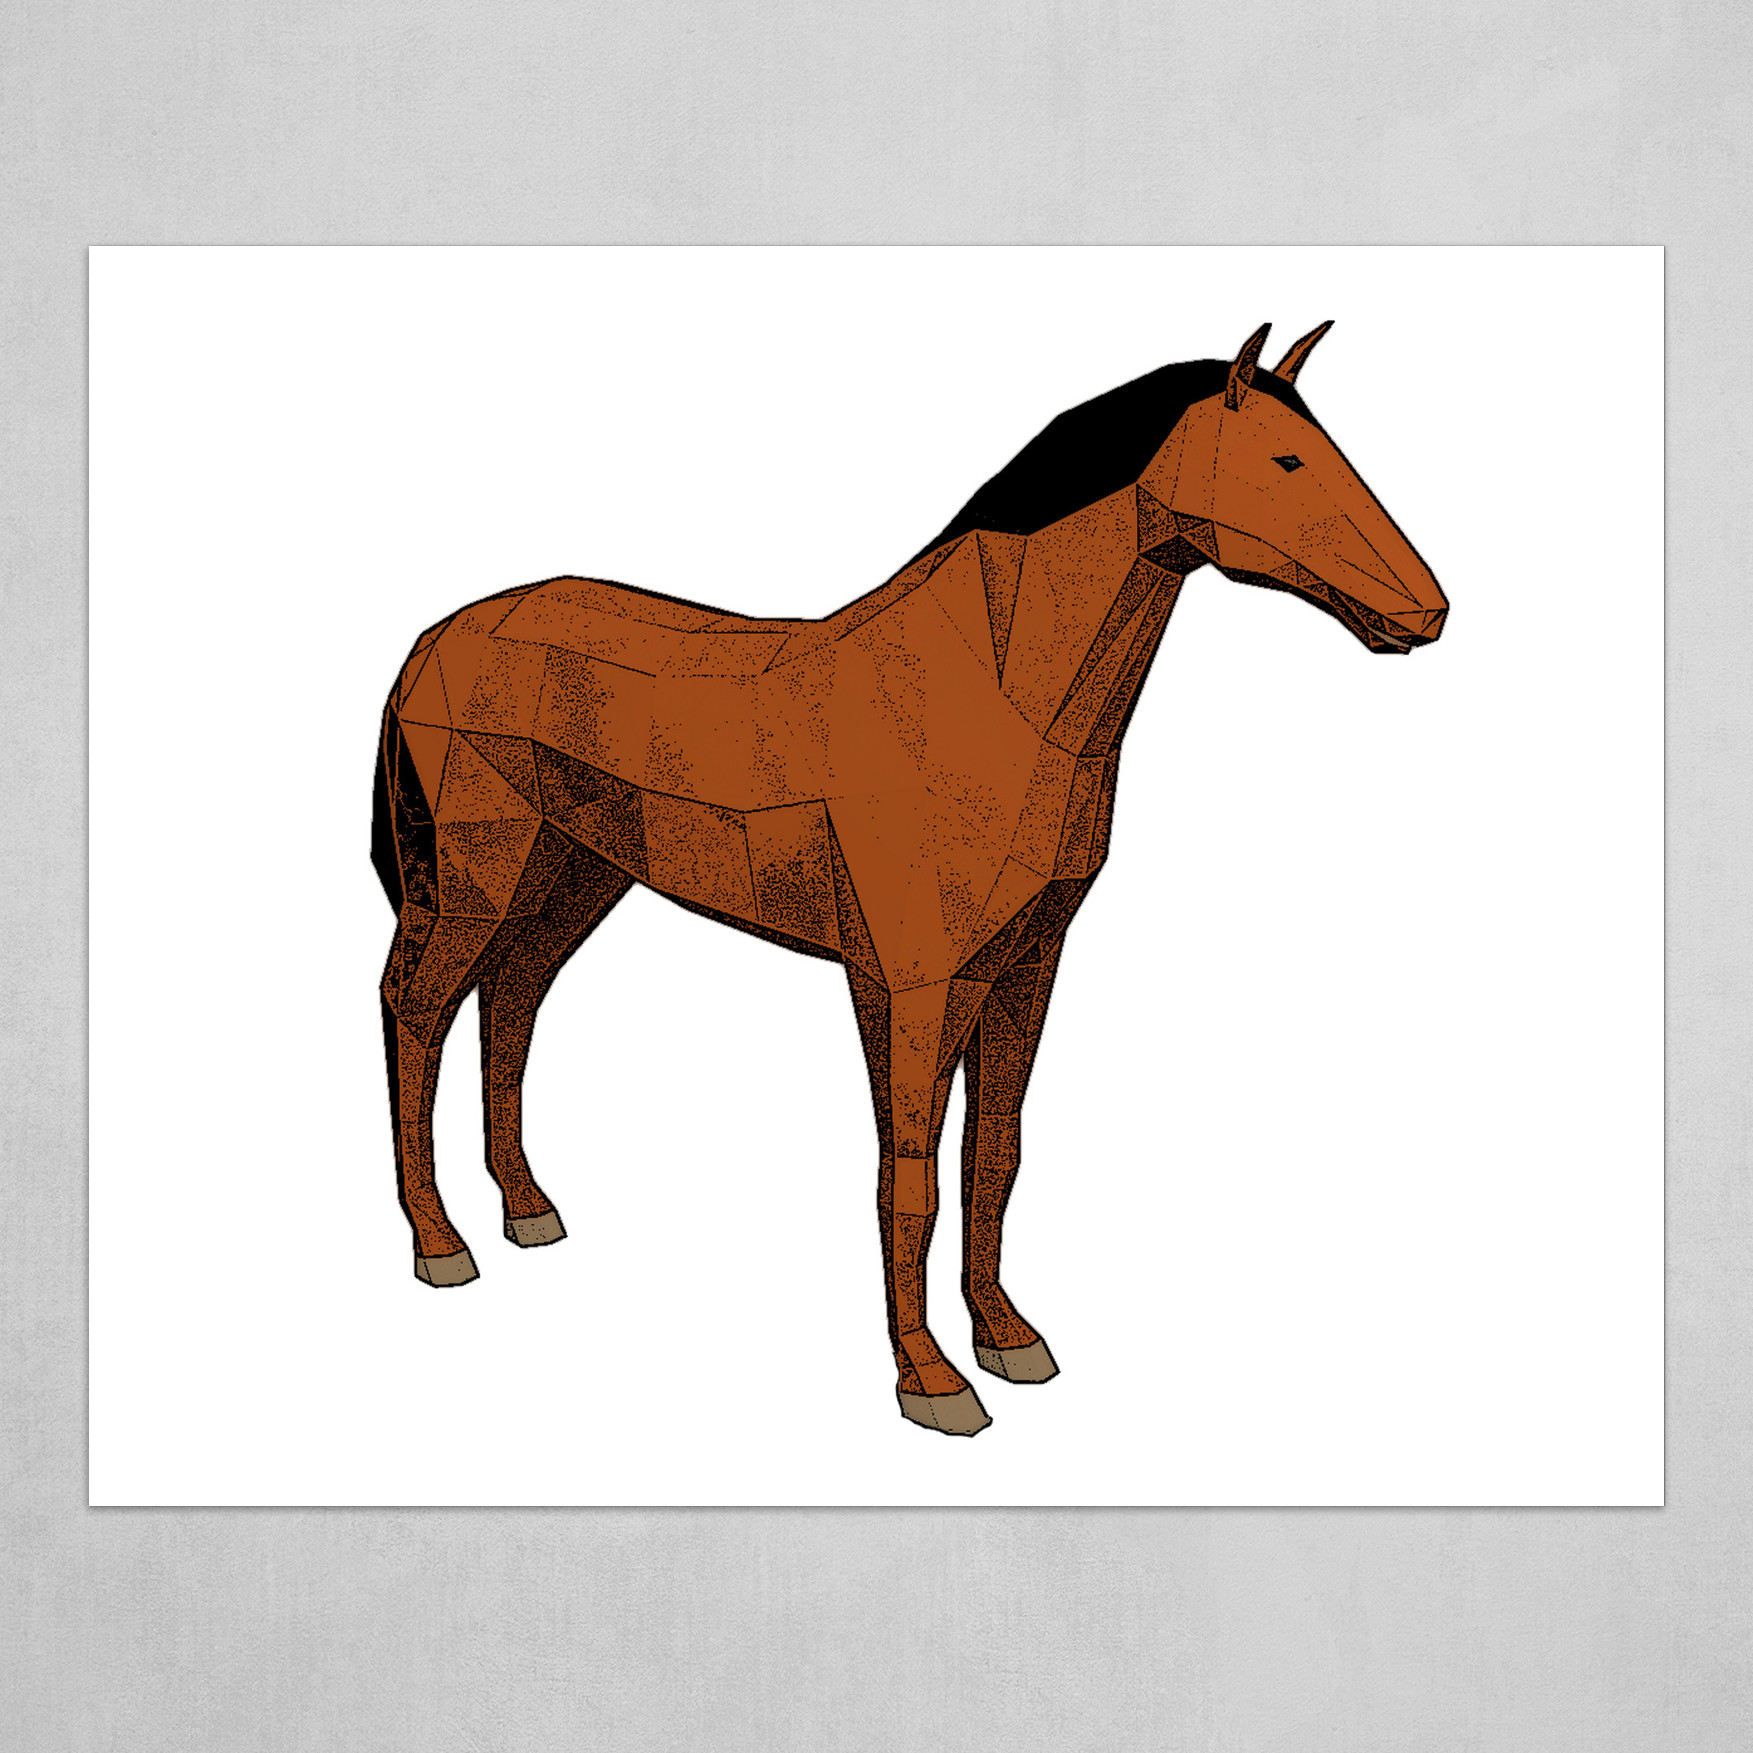 Lowpoly cartoon horse